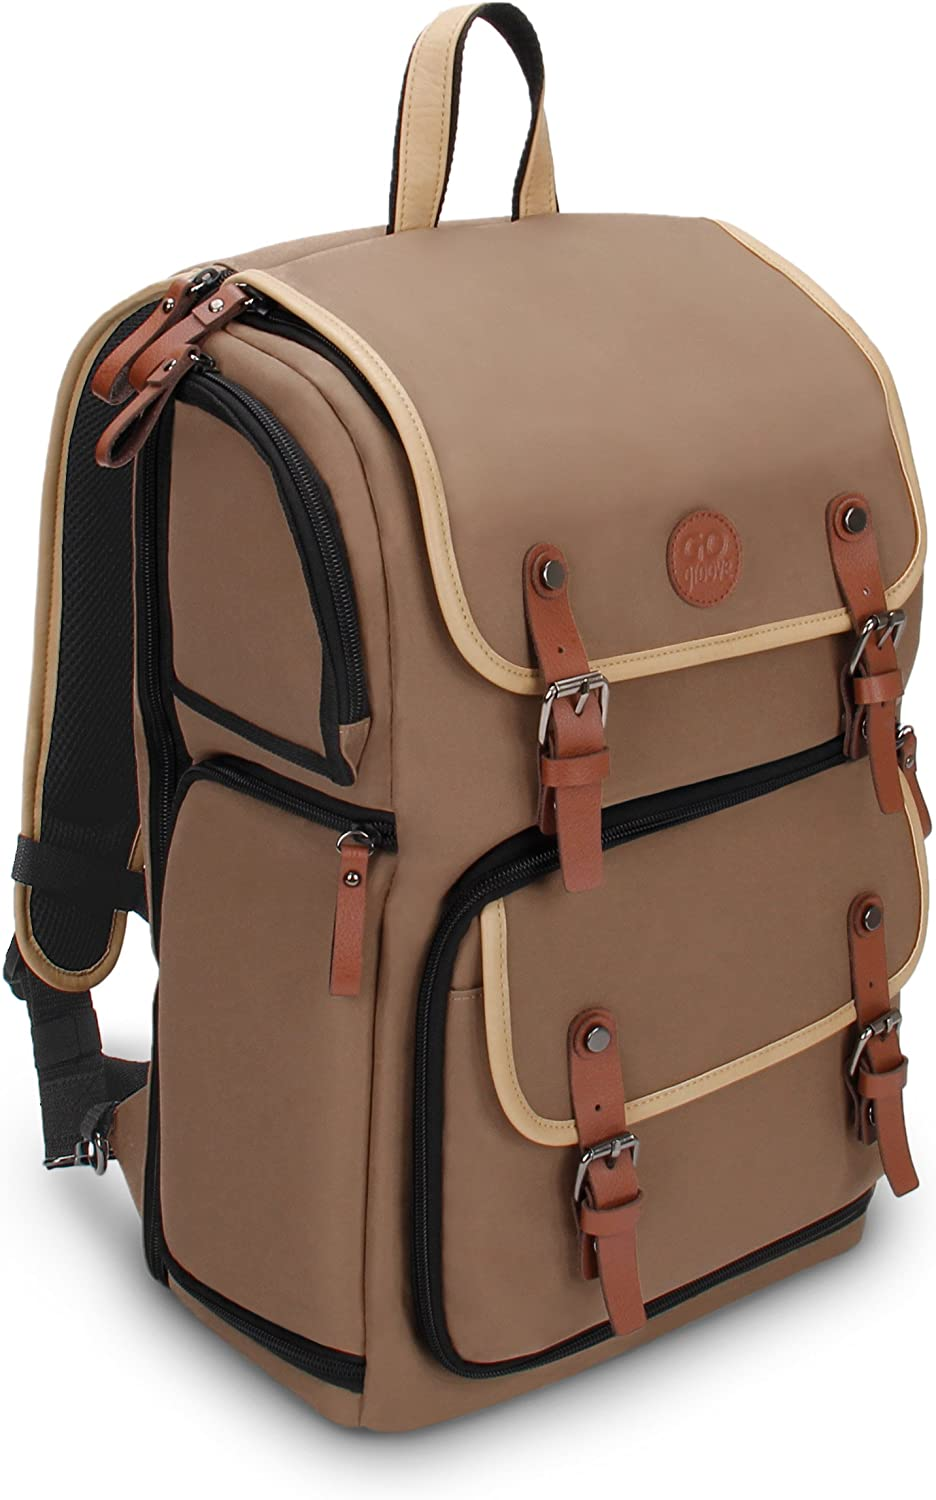 GOgroove Full-Size DSLR Photography Backpack Case (Tan) for Camera and Laptop with 15.6 inch Laptop Space, Accessory Storage, Tripod Holder, Long-Lasting Durability and Weatherproof Rain Cover